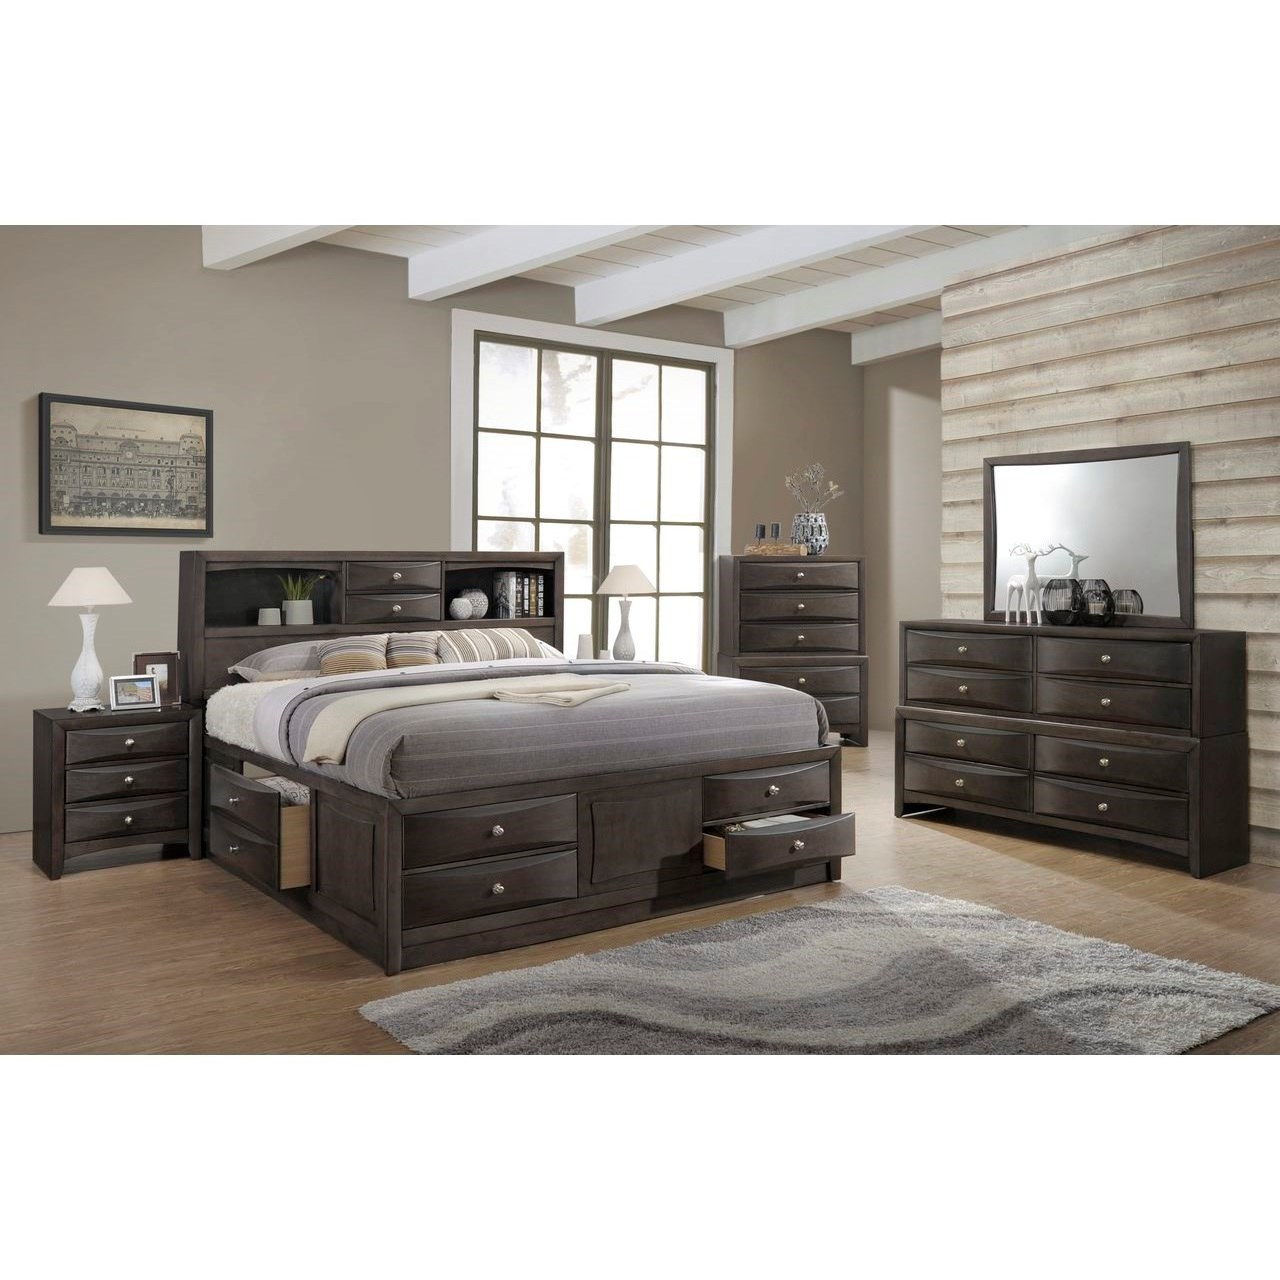 Image of: Lifestyle Todd Gray Queen Storage Bed W Bookcase Headboard Royal Furniture Bookcase Beds